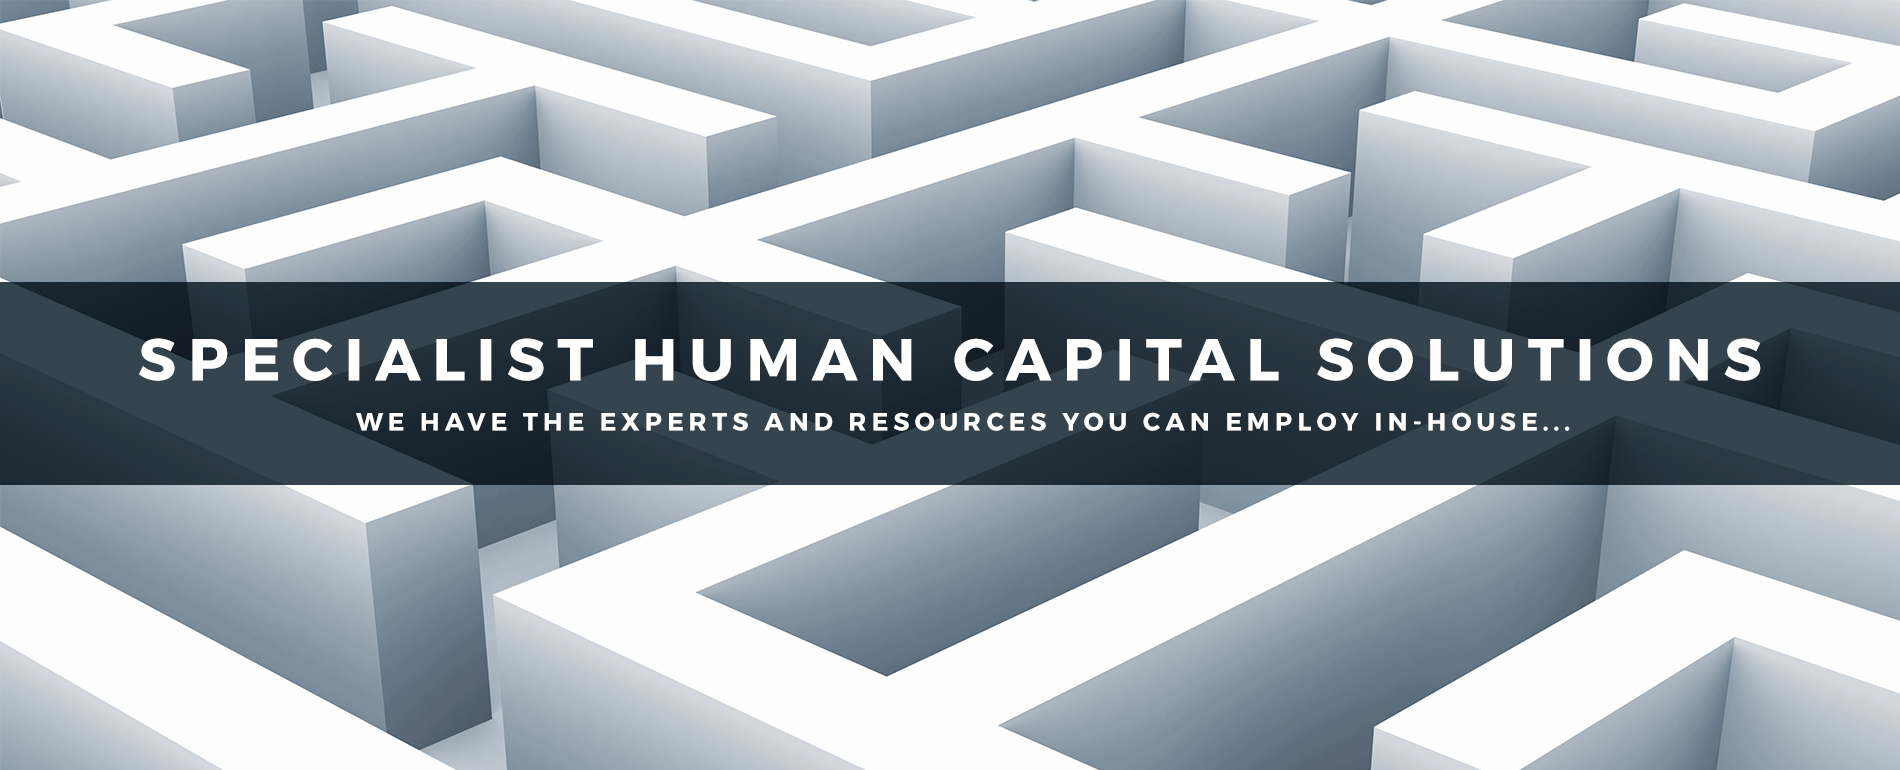 Specialist Human Capital Solutions